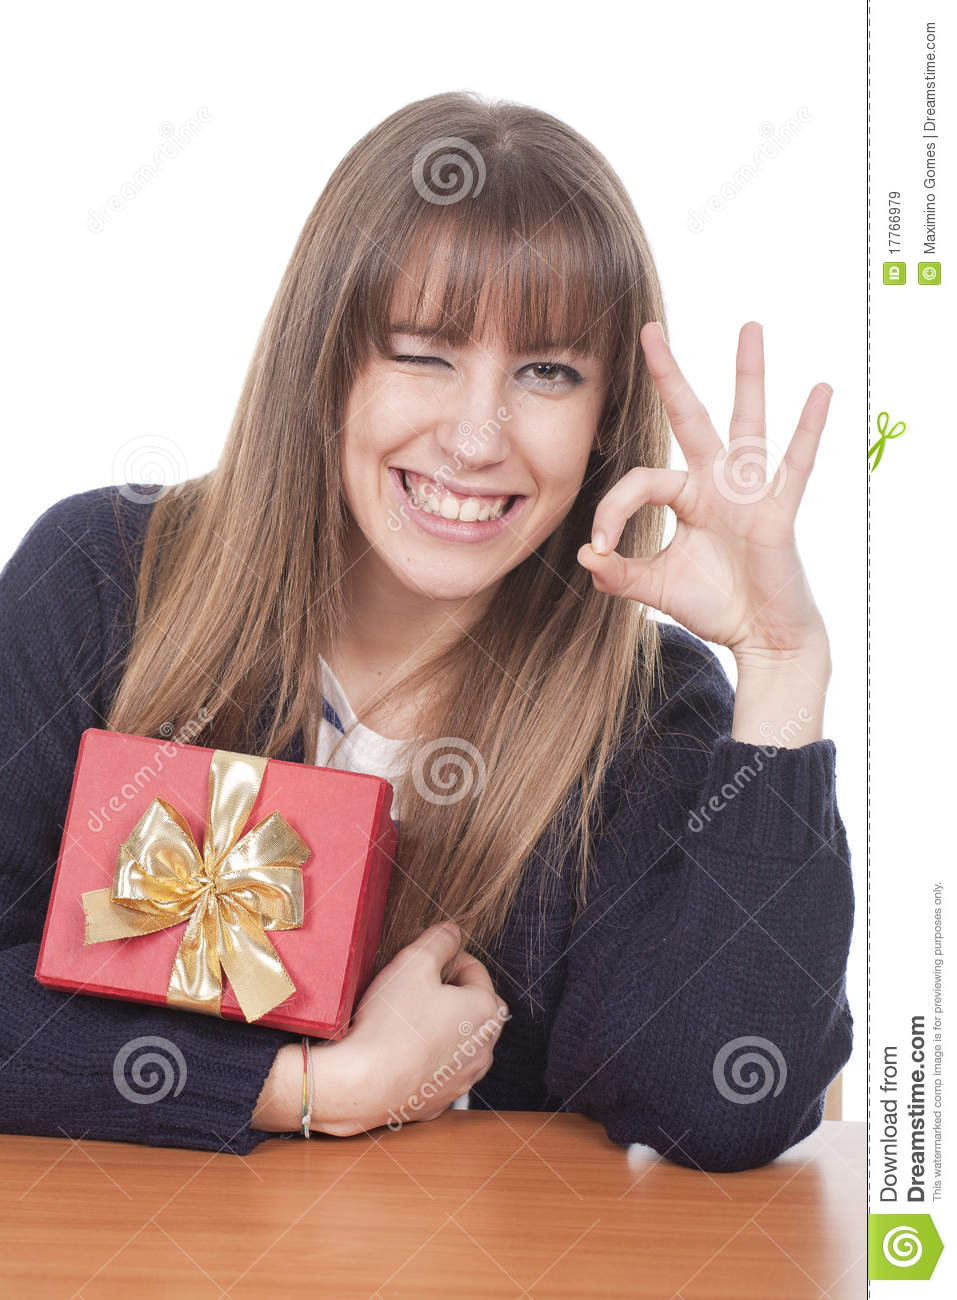 Woman Holding A Gift Box And Smiling Royalty Free Stock ...